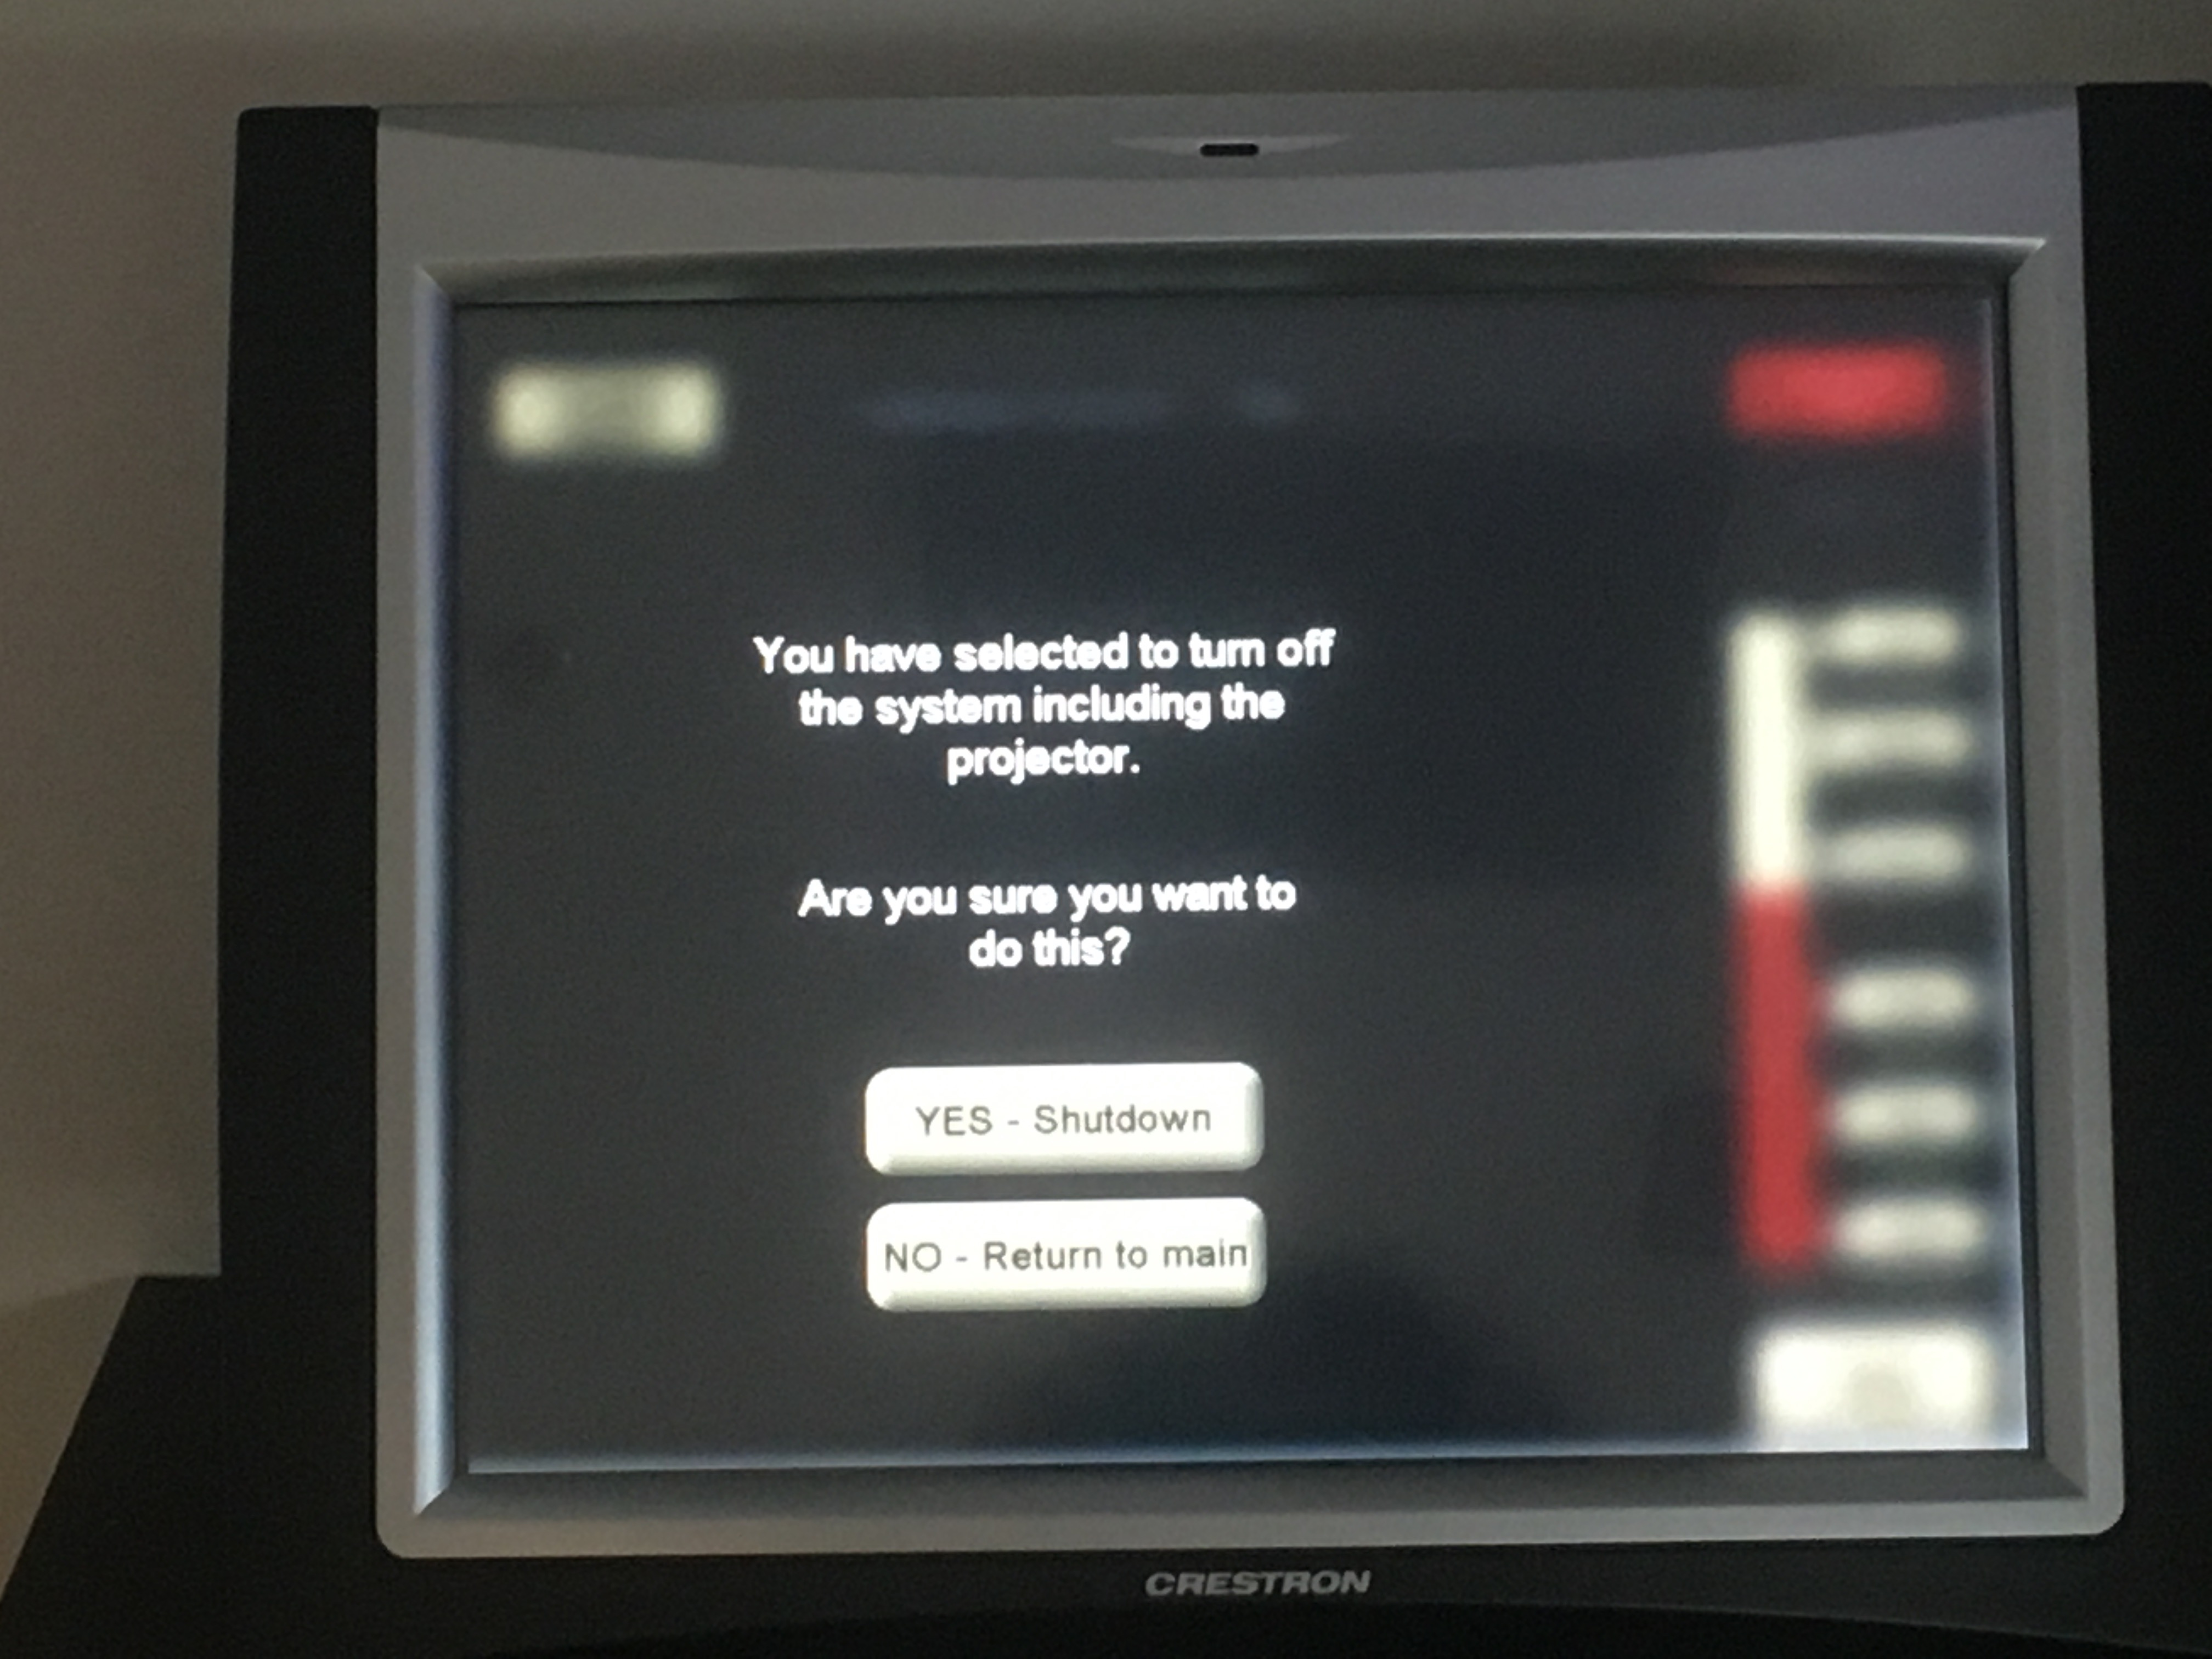 Photo of the crestron control touch panel showing the option to shutdown the system